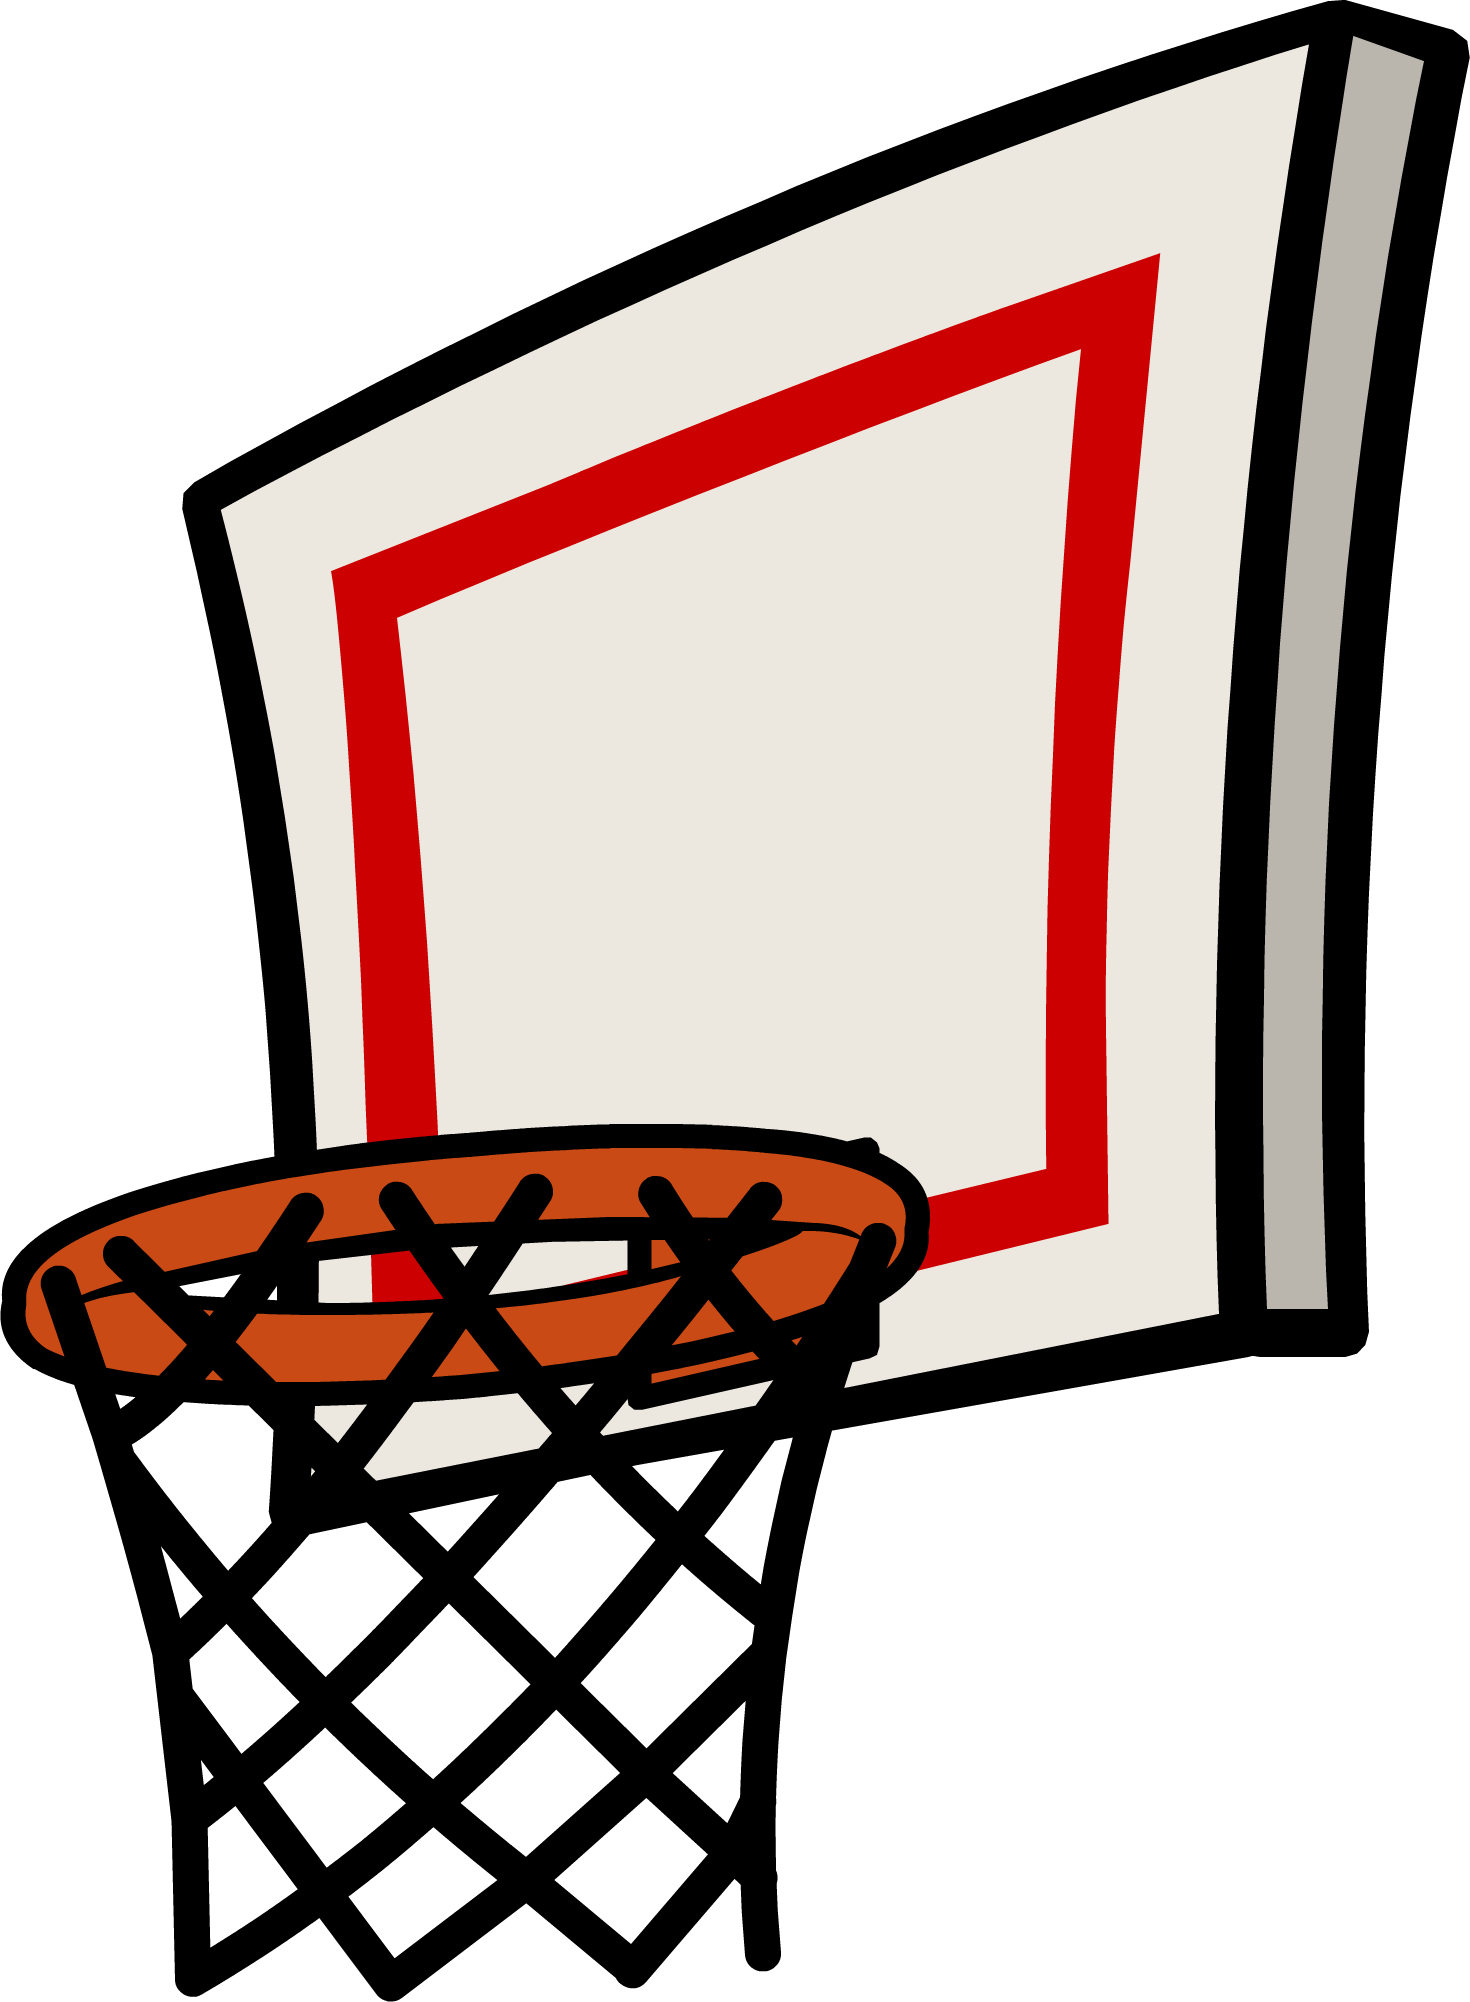 Page full of basketball clipart picture royalty free library 28+ Collection of Basketball Goal Clipart Transparent | High quality ... picture royalty free library